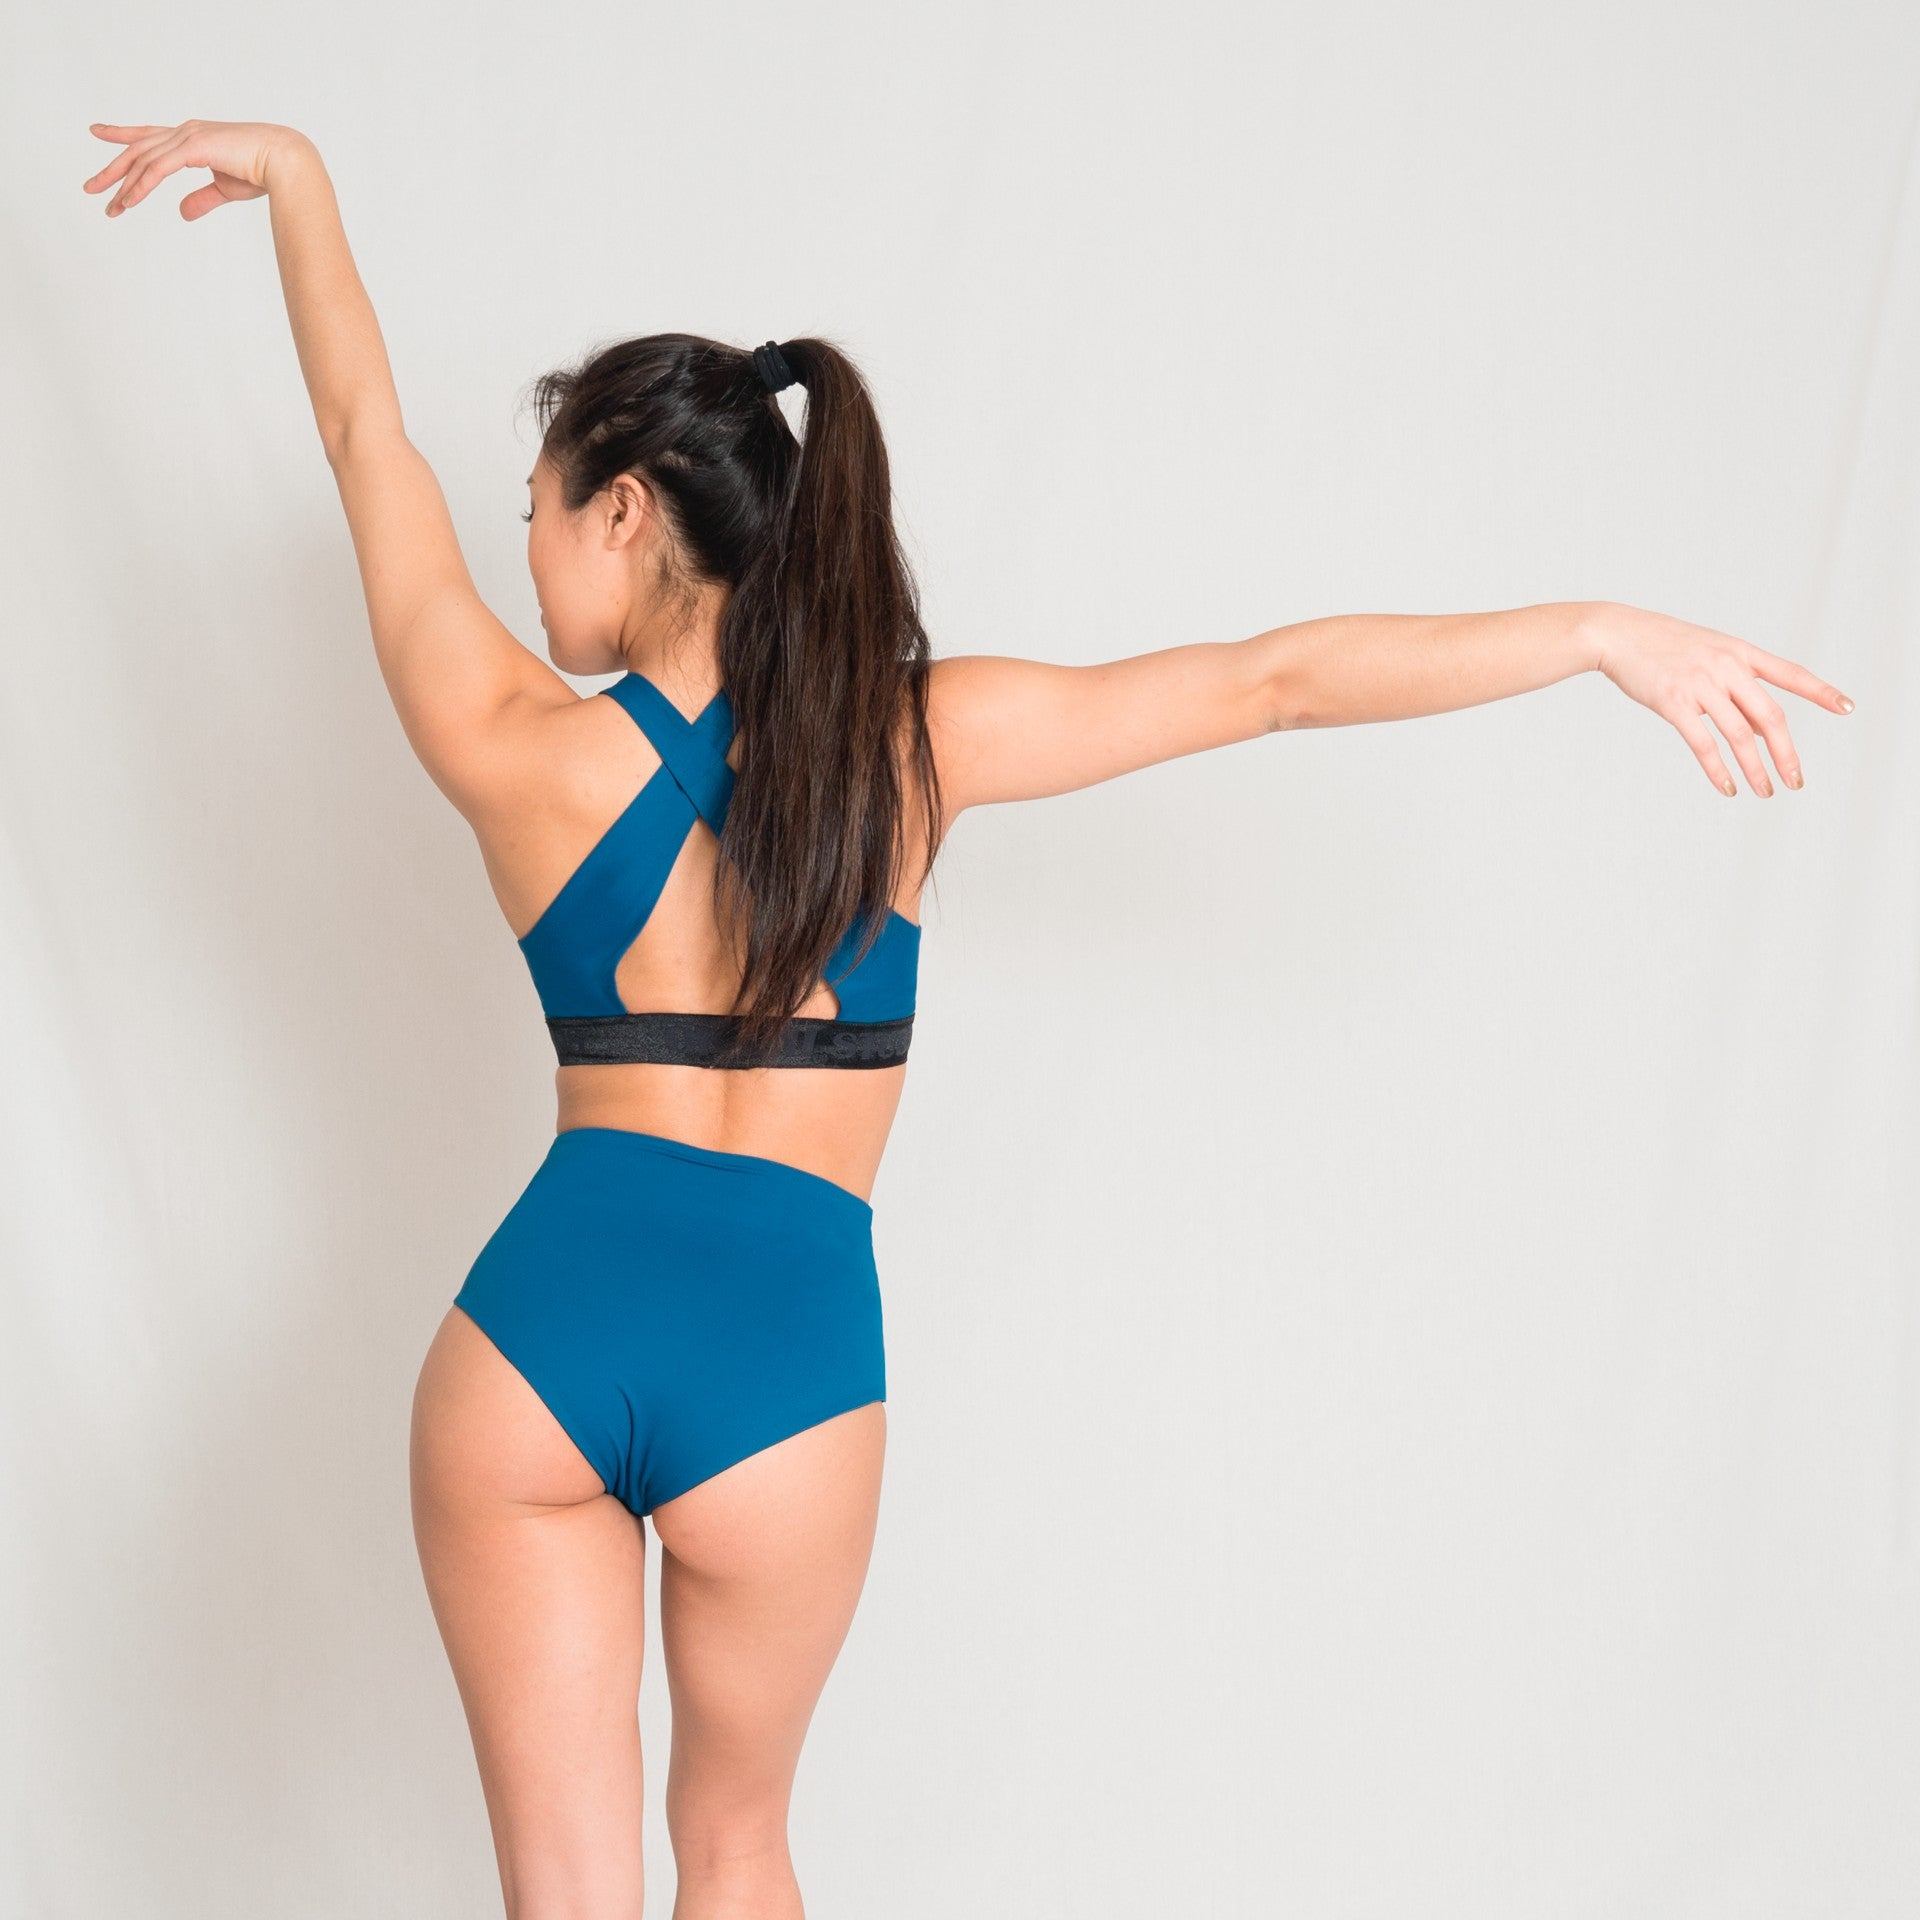 High waist teal shorts for aerial and pole dance